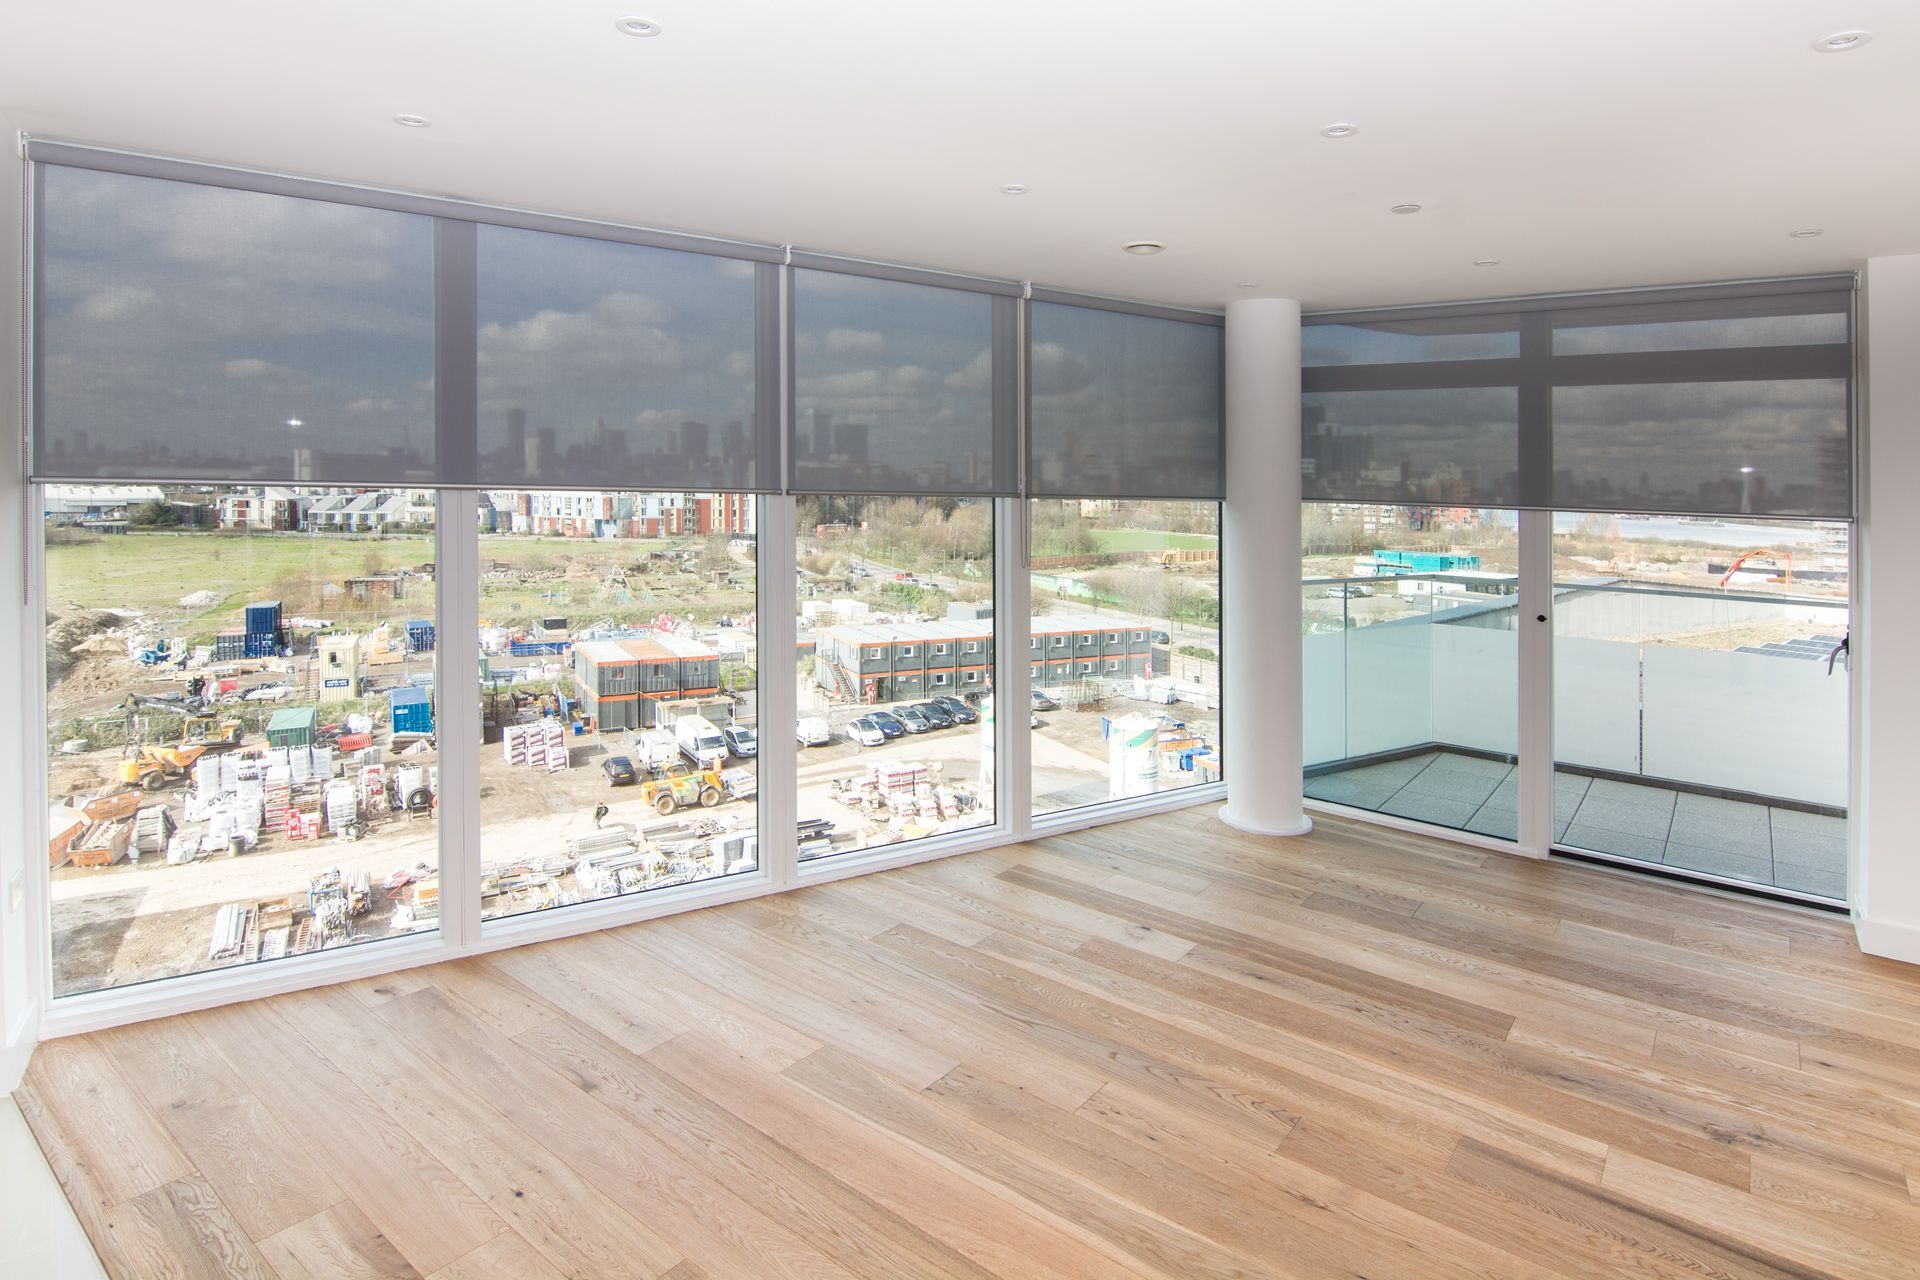 Sunscreen Roller Blinds For Floor To Ceiling Windows In New Apartment In Greenwich On The Thames River Floor To Ceiling Windows House Blinds Electric Blinds